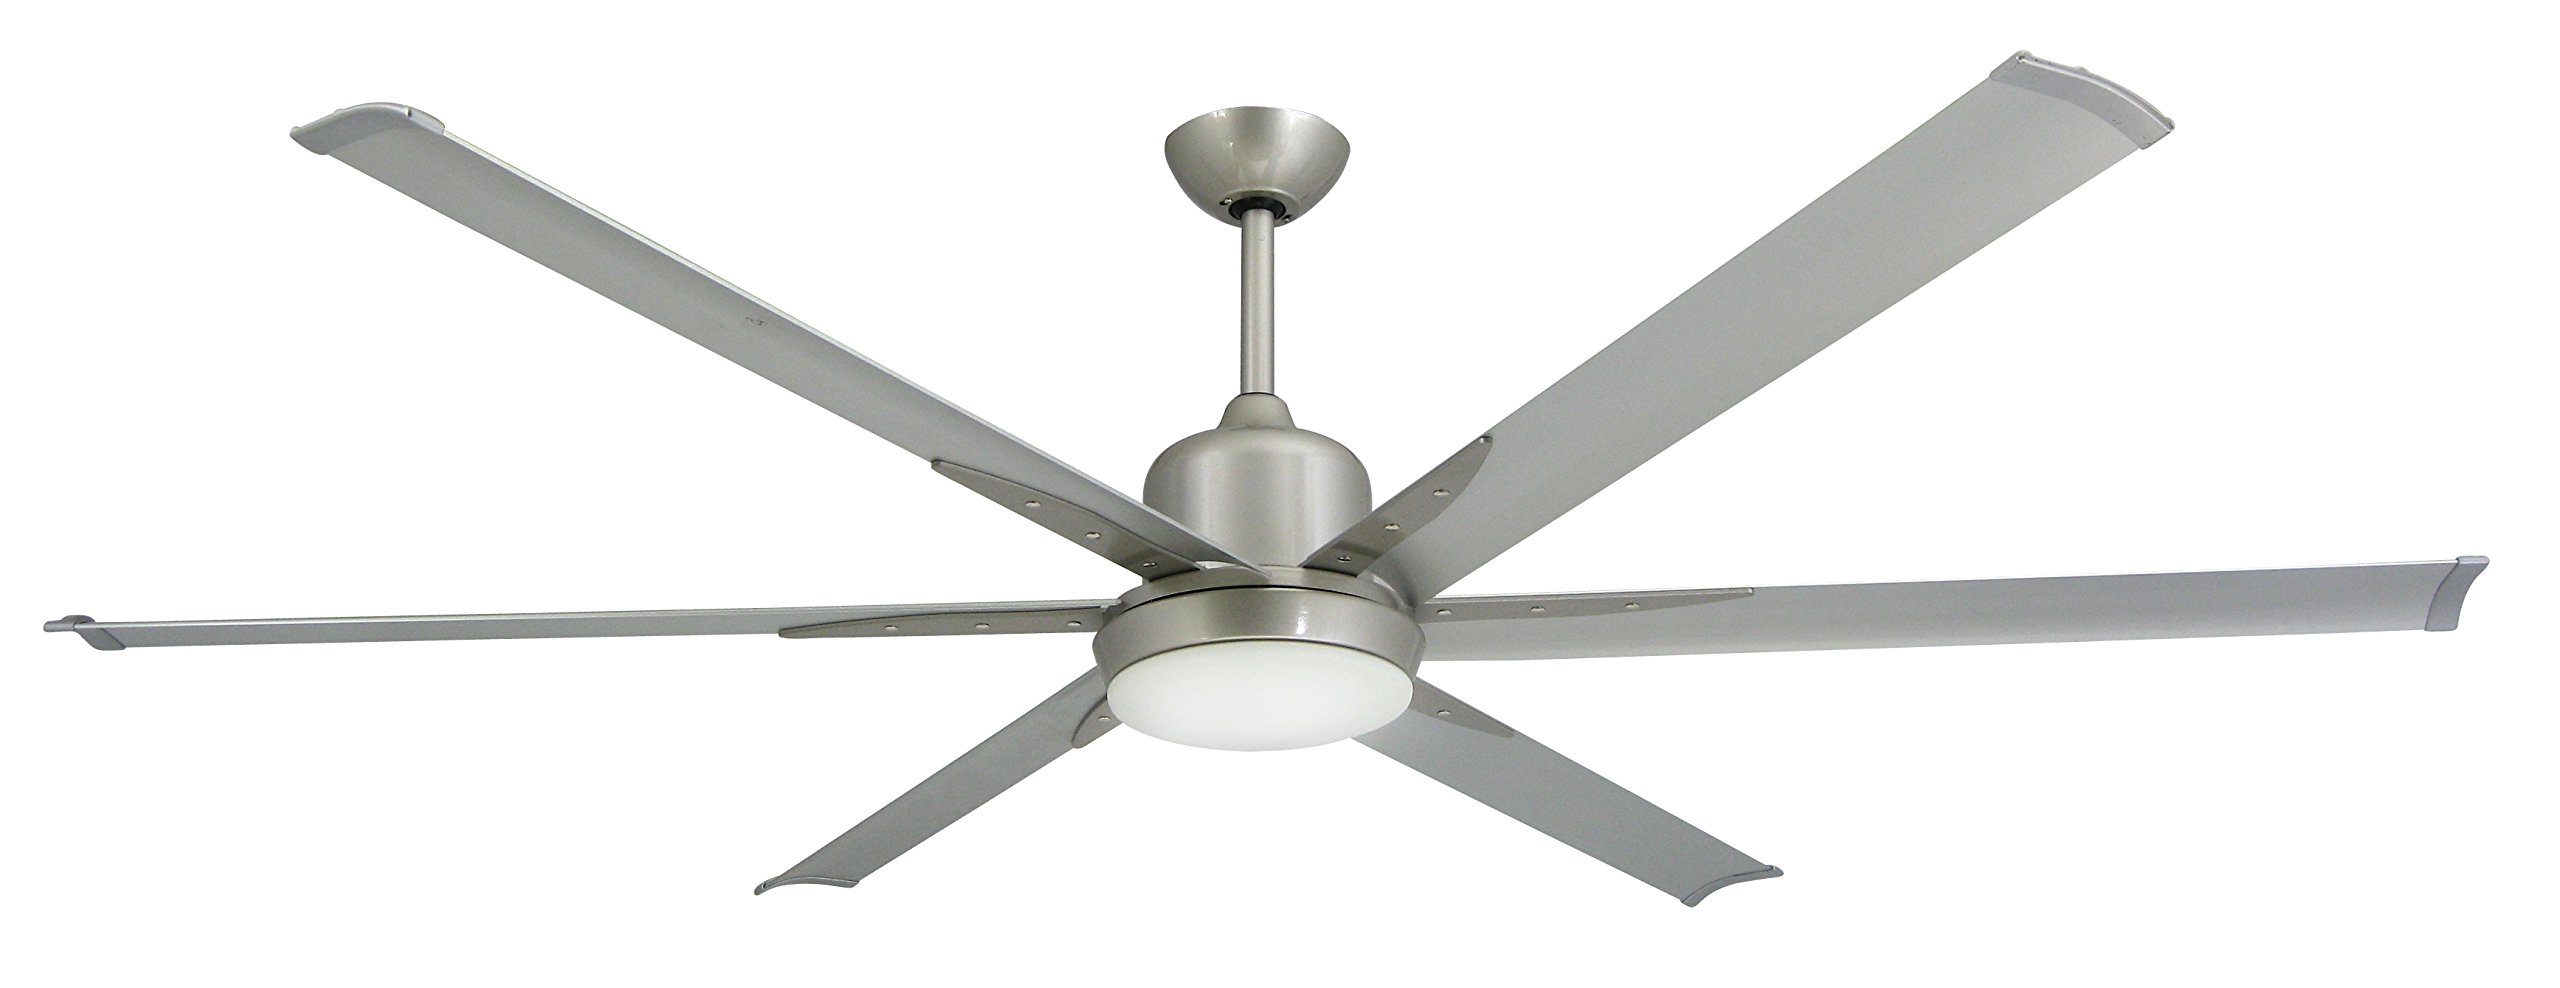 TroposAir Titan Brushed Nickel Large Industrial Ceiling Fan with DC-Motor, 72'' Extruded Aluminum Blades, Integrated Light and Remote